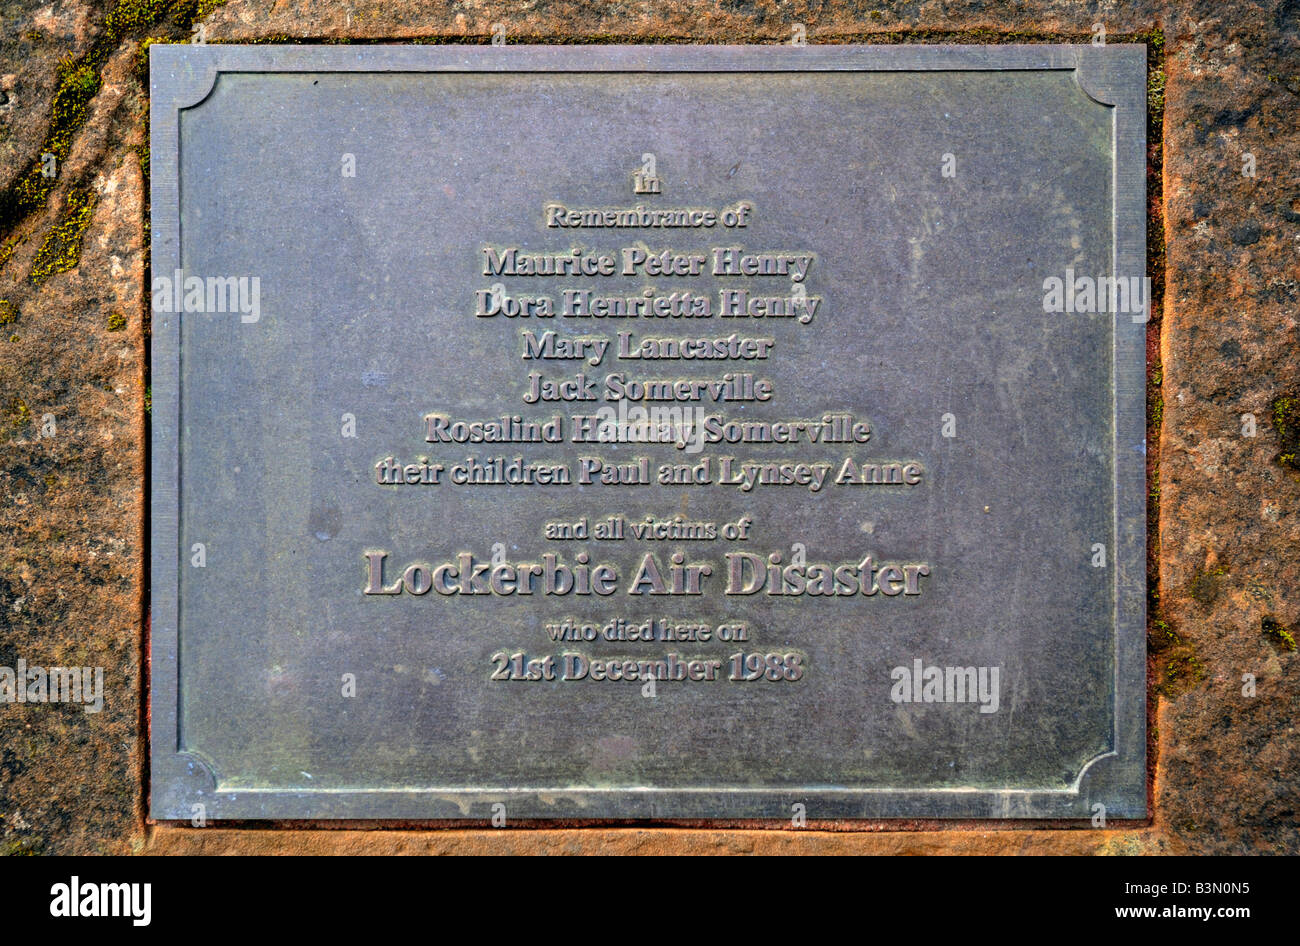 Plaque on memorial to the Lockerbie Air Disaster, 1988. Sherwood Crescent, Lockerbie,  Dumfries and Galloway, Scotland, - Stock Image